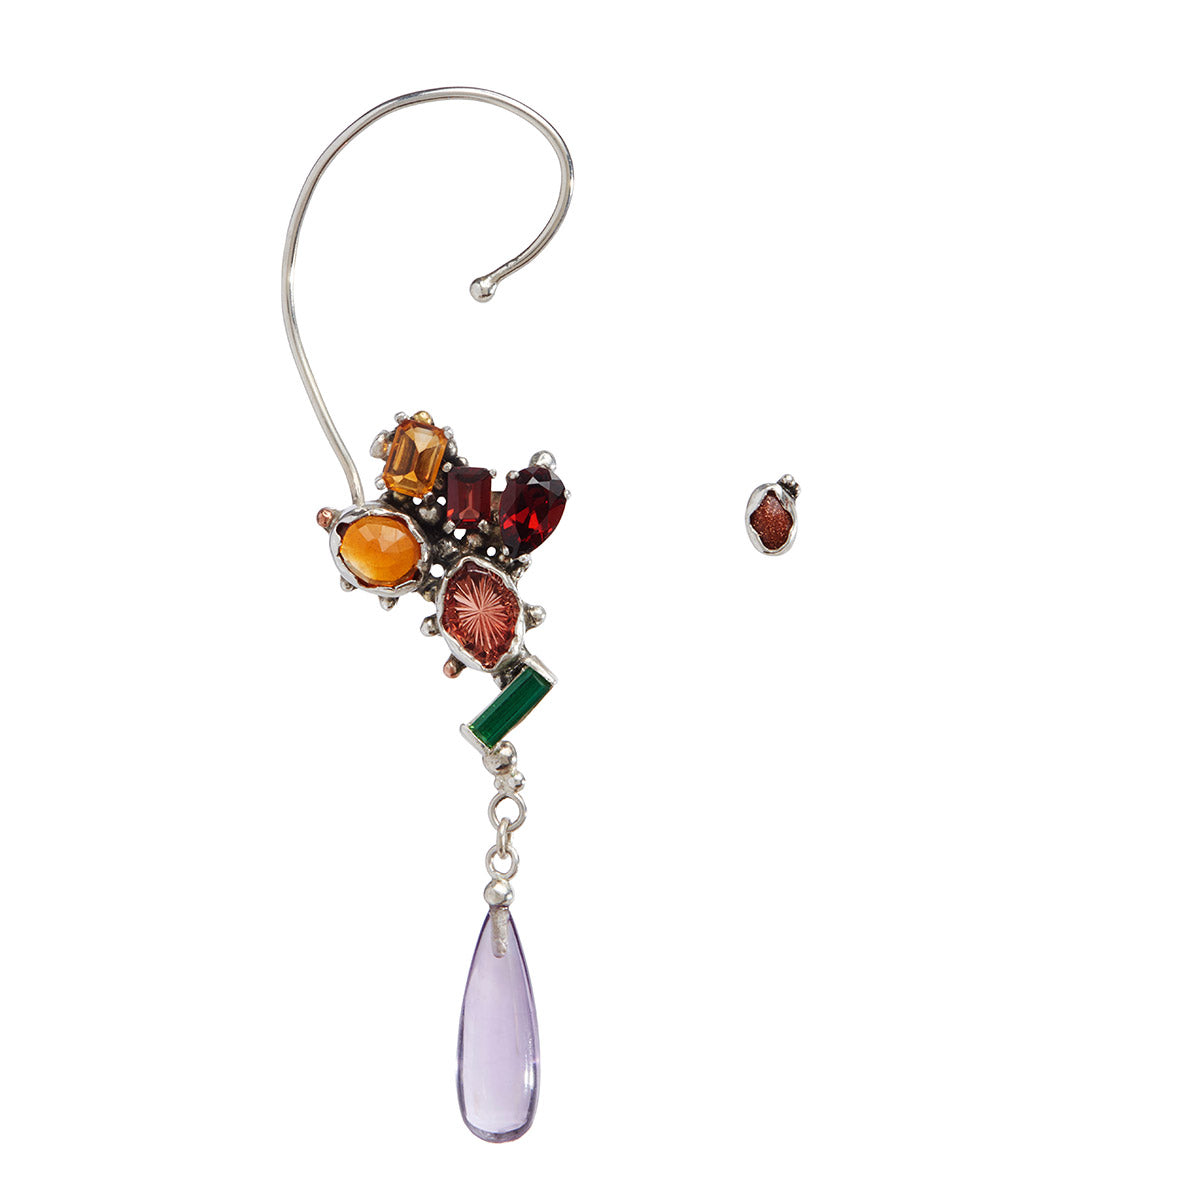 The Bouquet of Flowers Ear Cuff